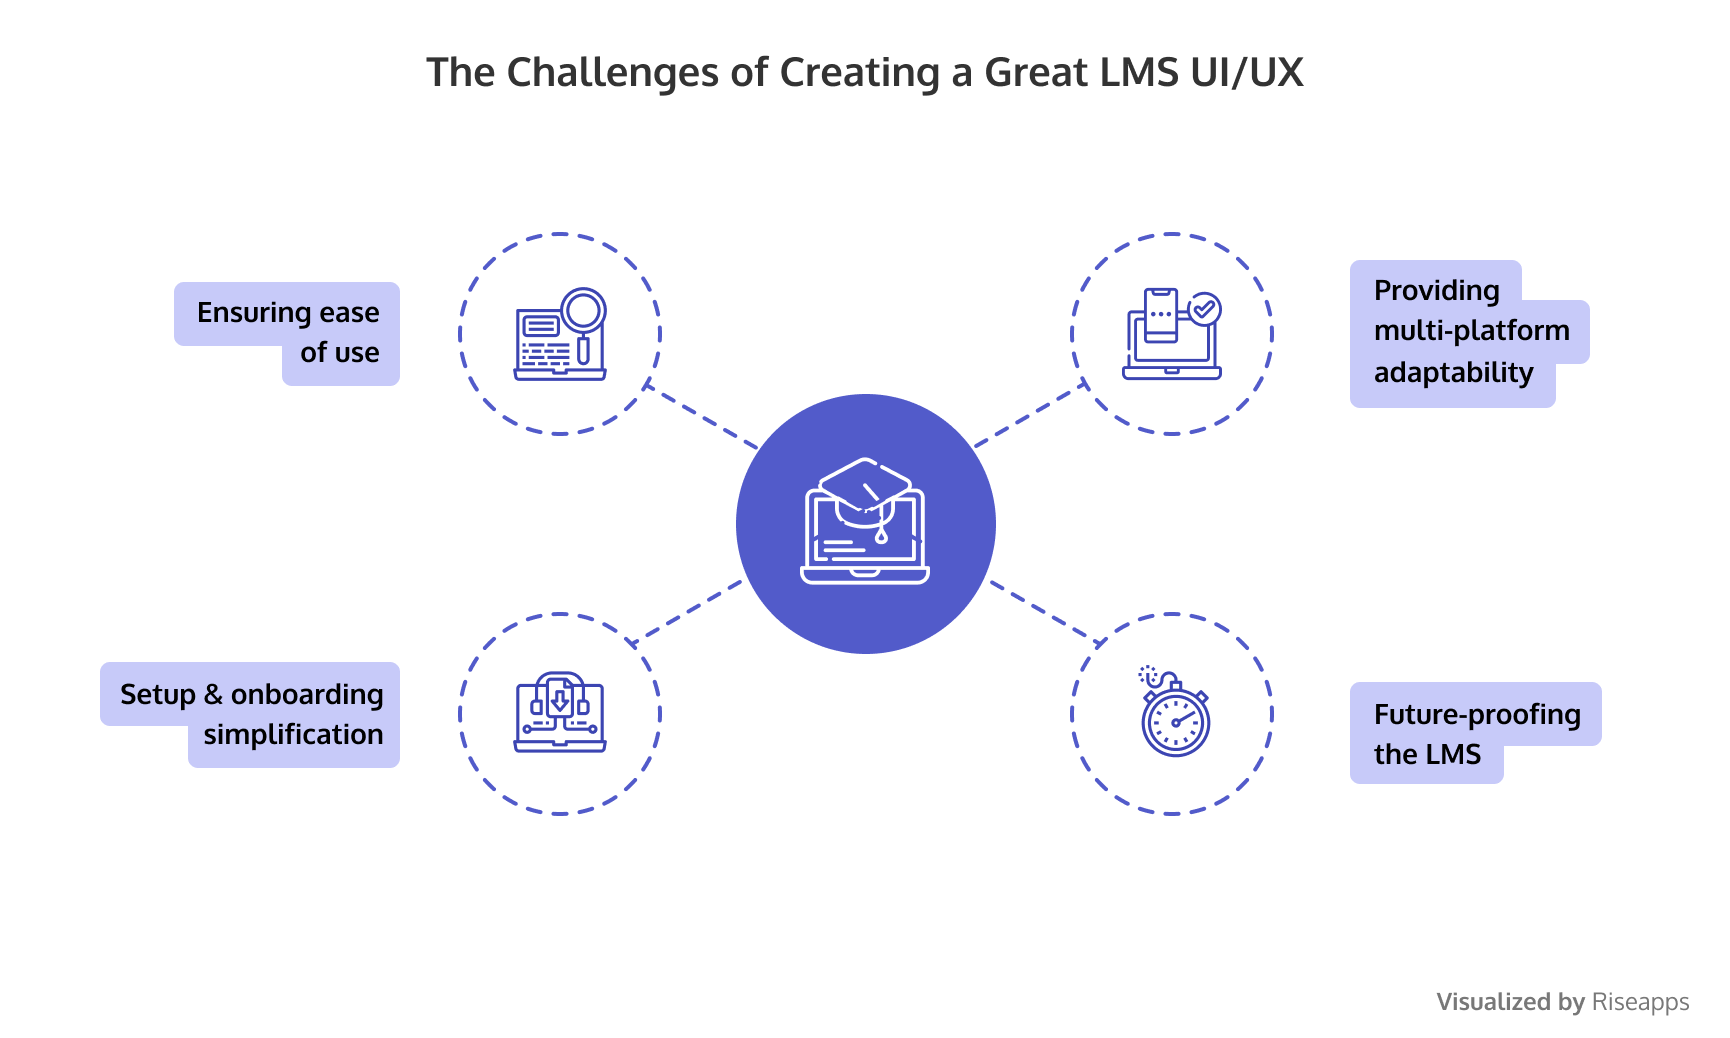 The Challenges of Creating a Great LMS UI/UX